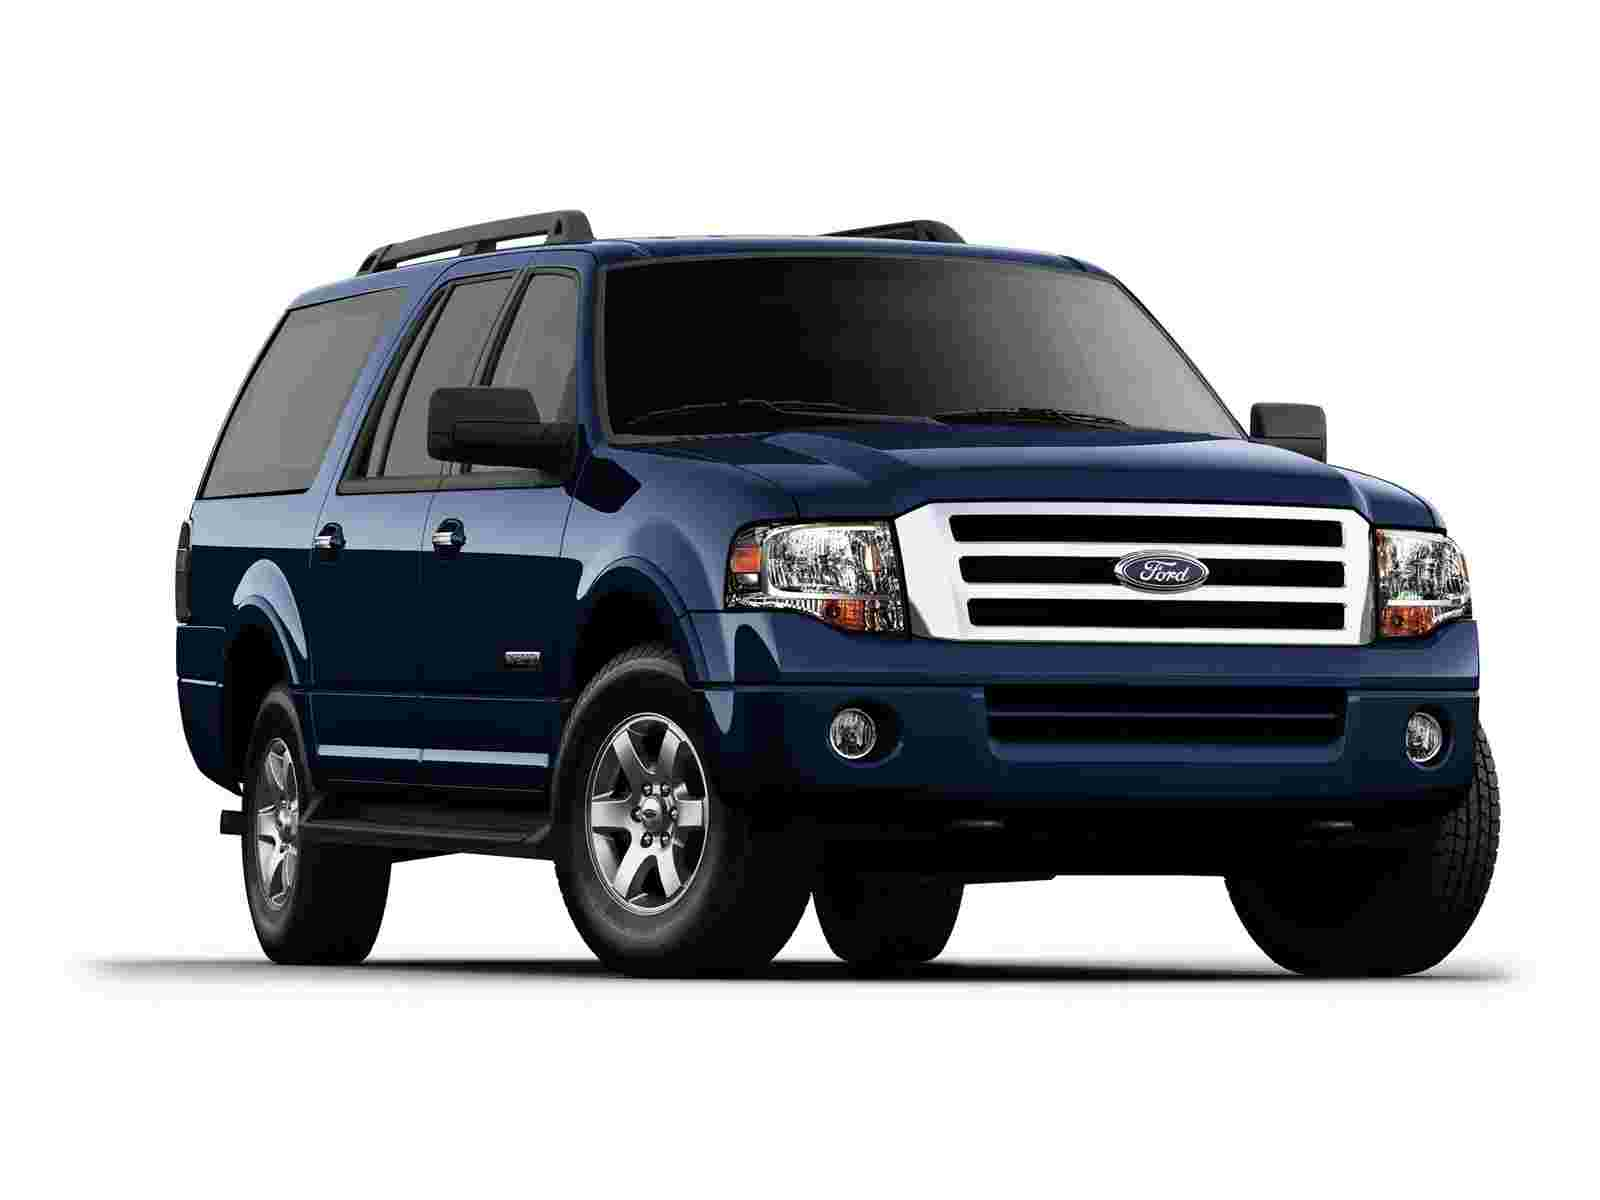 Ford Expedition 2014 foto - 4